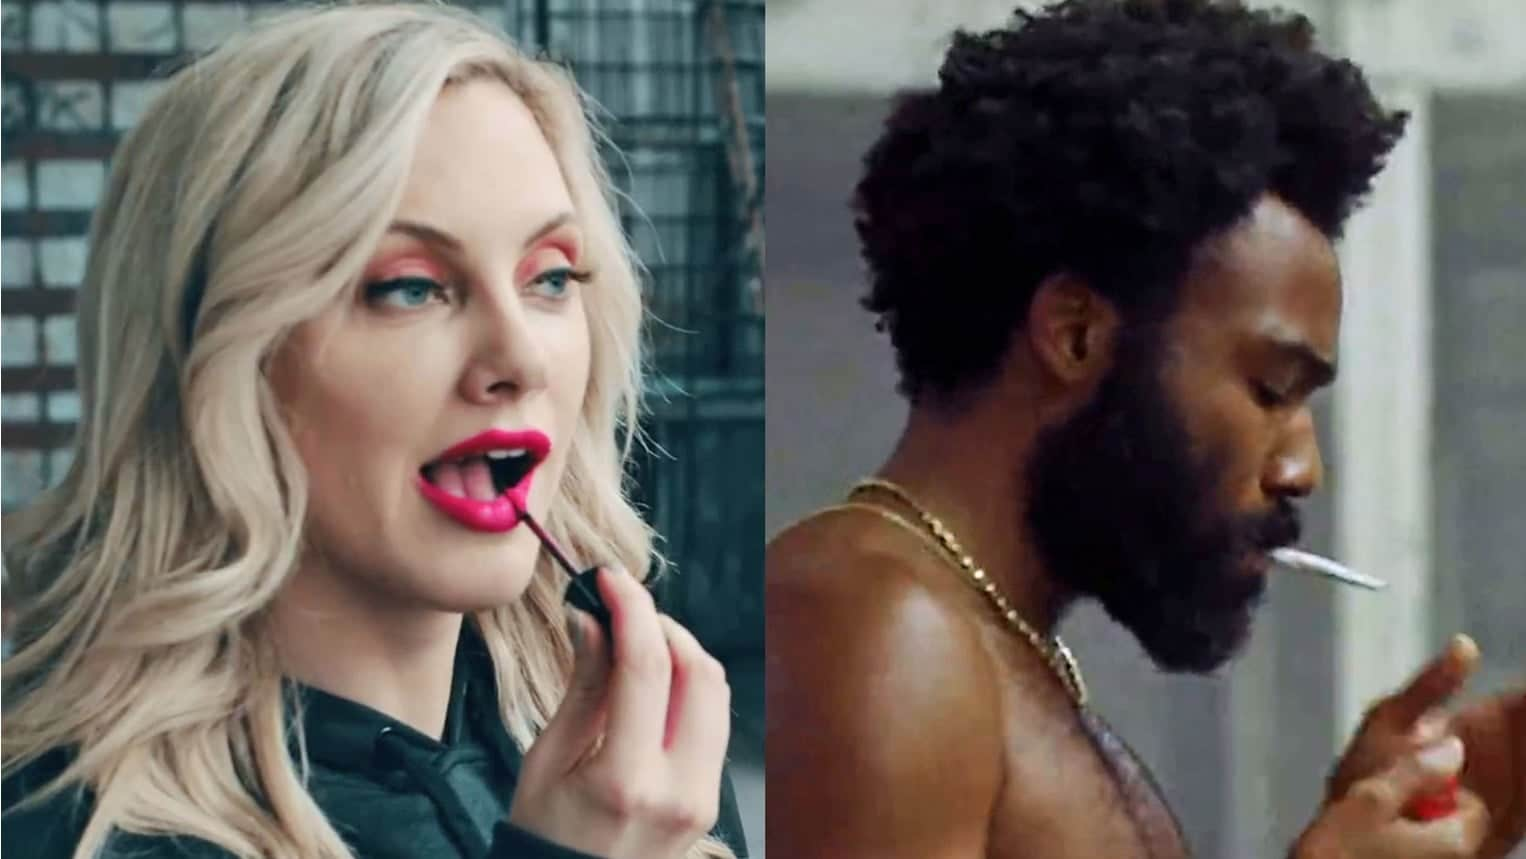 YouTube star 'whitewashes' Childish Gambino's #ThisIsAmerica with women's edit